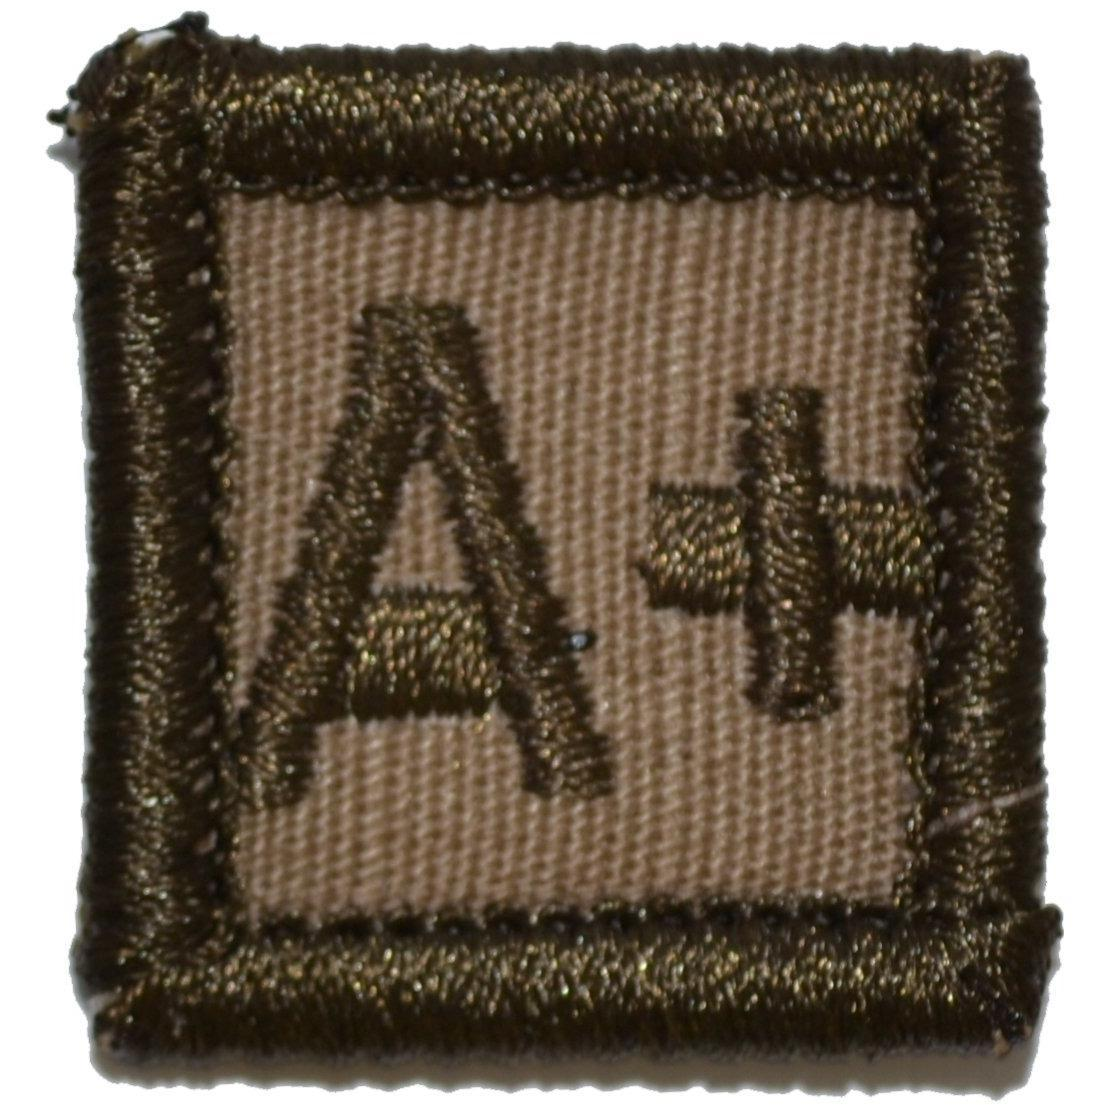 Blood Type A POS - 1x1 Patch